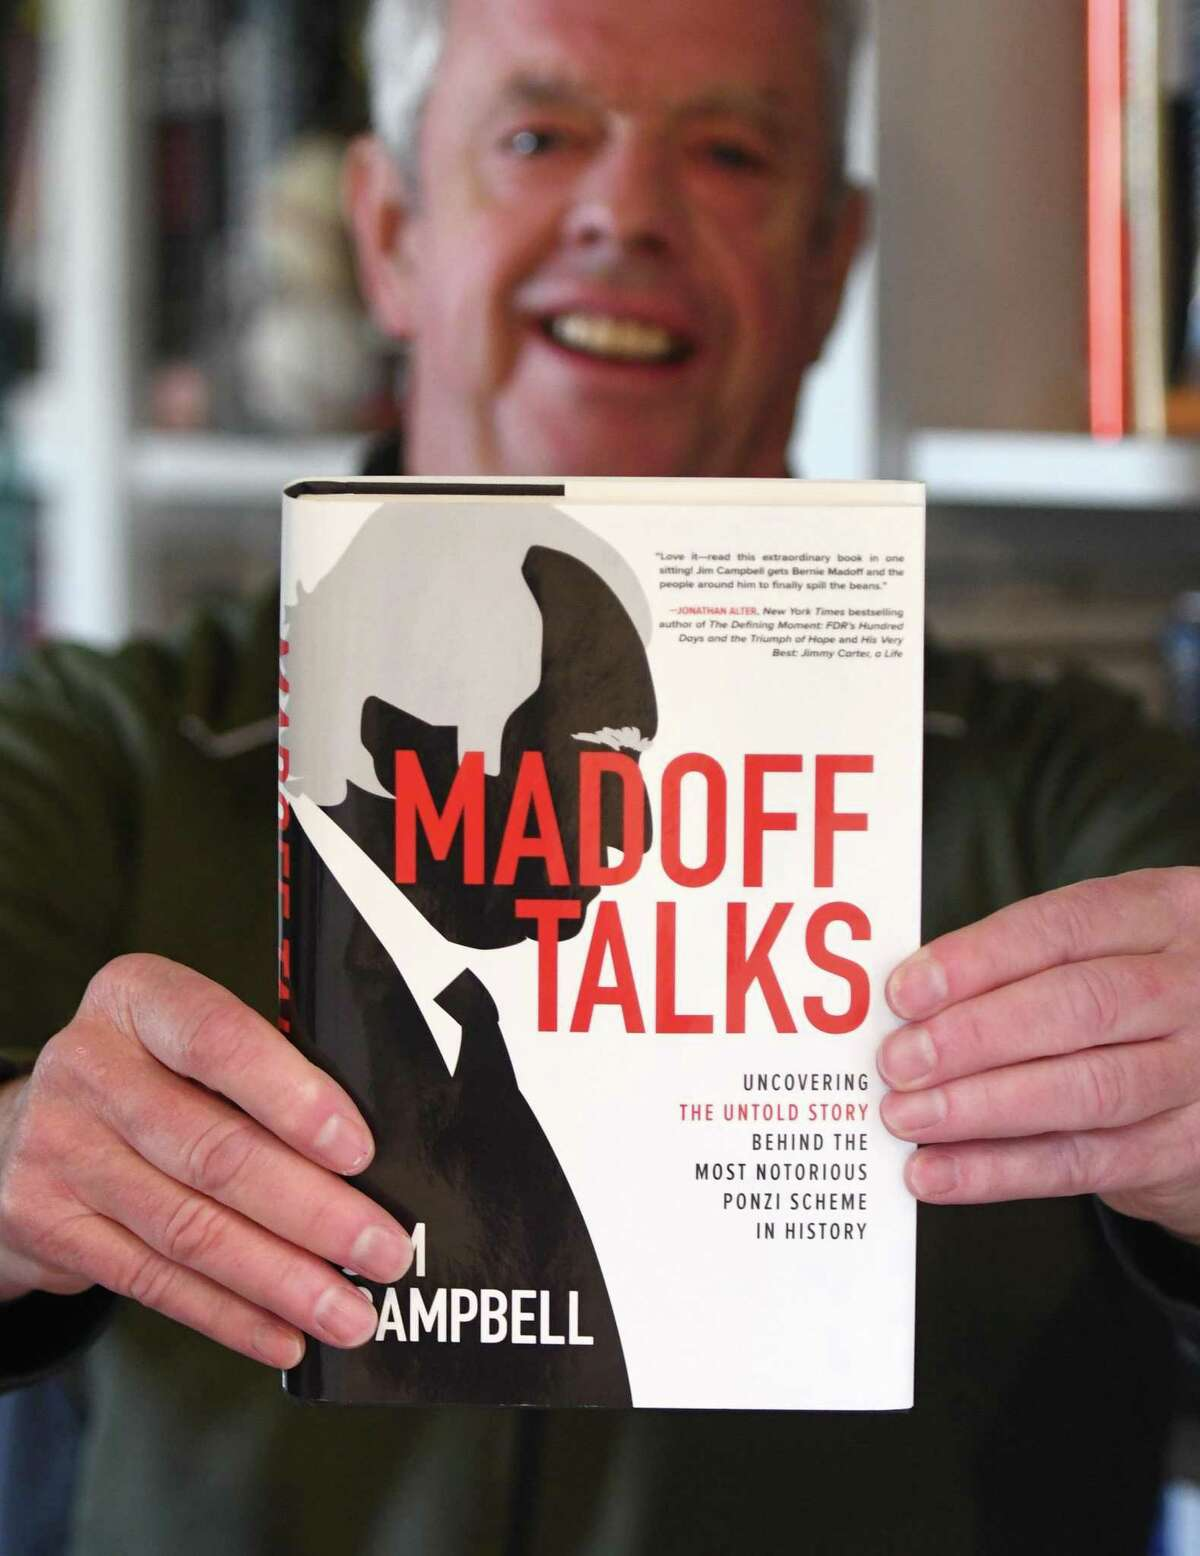 """WGCH host Jim Campbell holds his new book """"Madoff Talks"""" at his home in Old Greenwich, Conn. Thursday, April 22, 2021. Campbell has written a comprehensive new book about notorious Ponzi scheme fraudster Bernie Madoff that is hitting shelves next week coincidentally just after Madoff passed away in prison. Campbell is in the middle of a major publicity tour, including features in the NY Times and CBS Sunday Morning."""